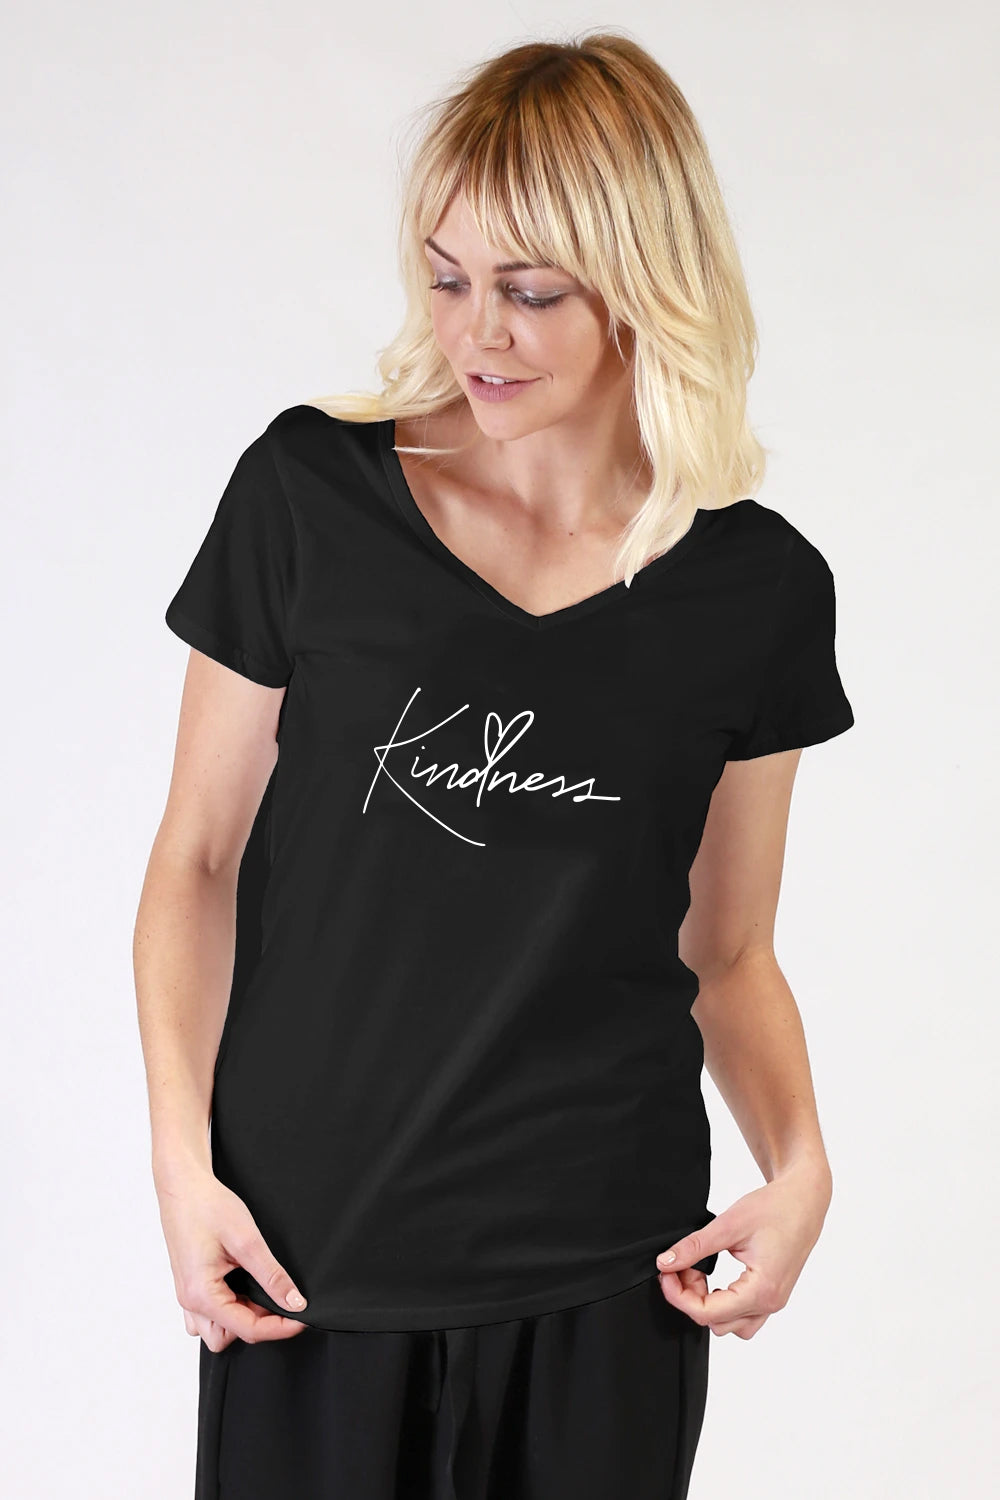 Kindness Black V Neck T Shirt